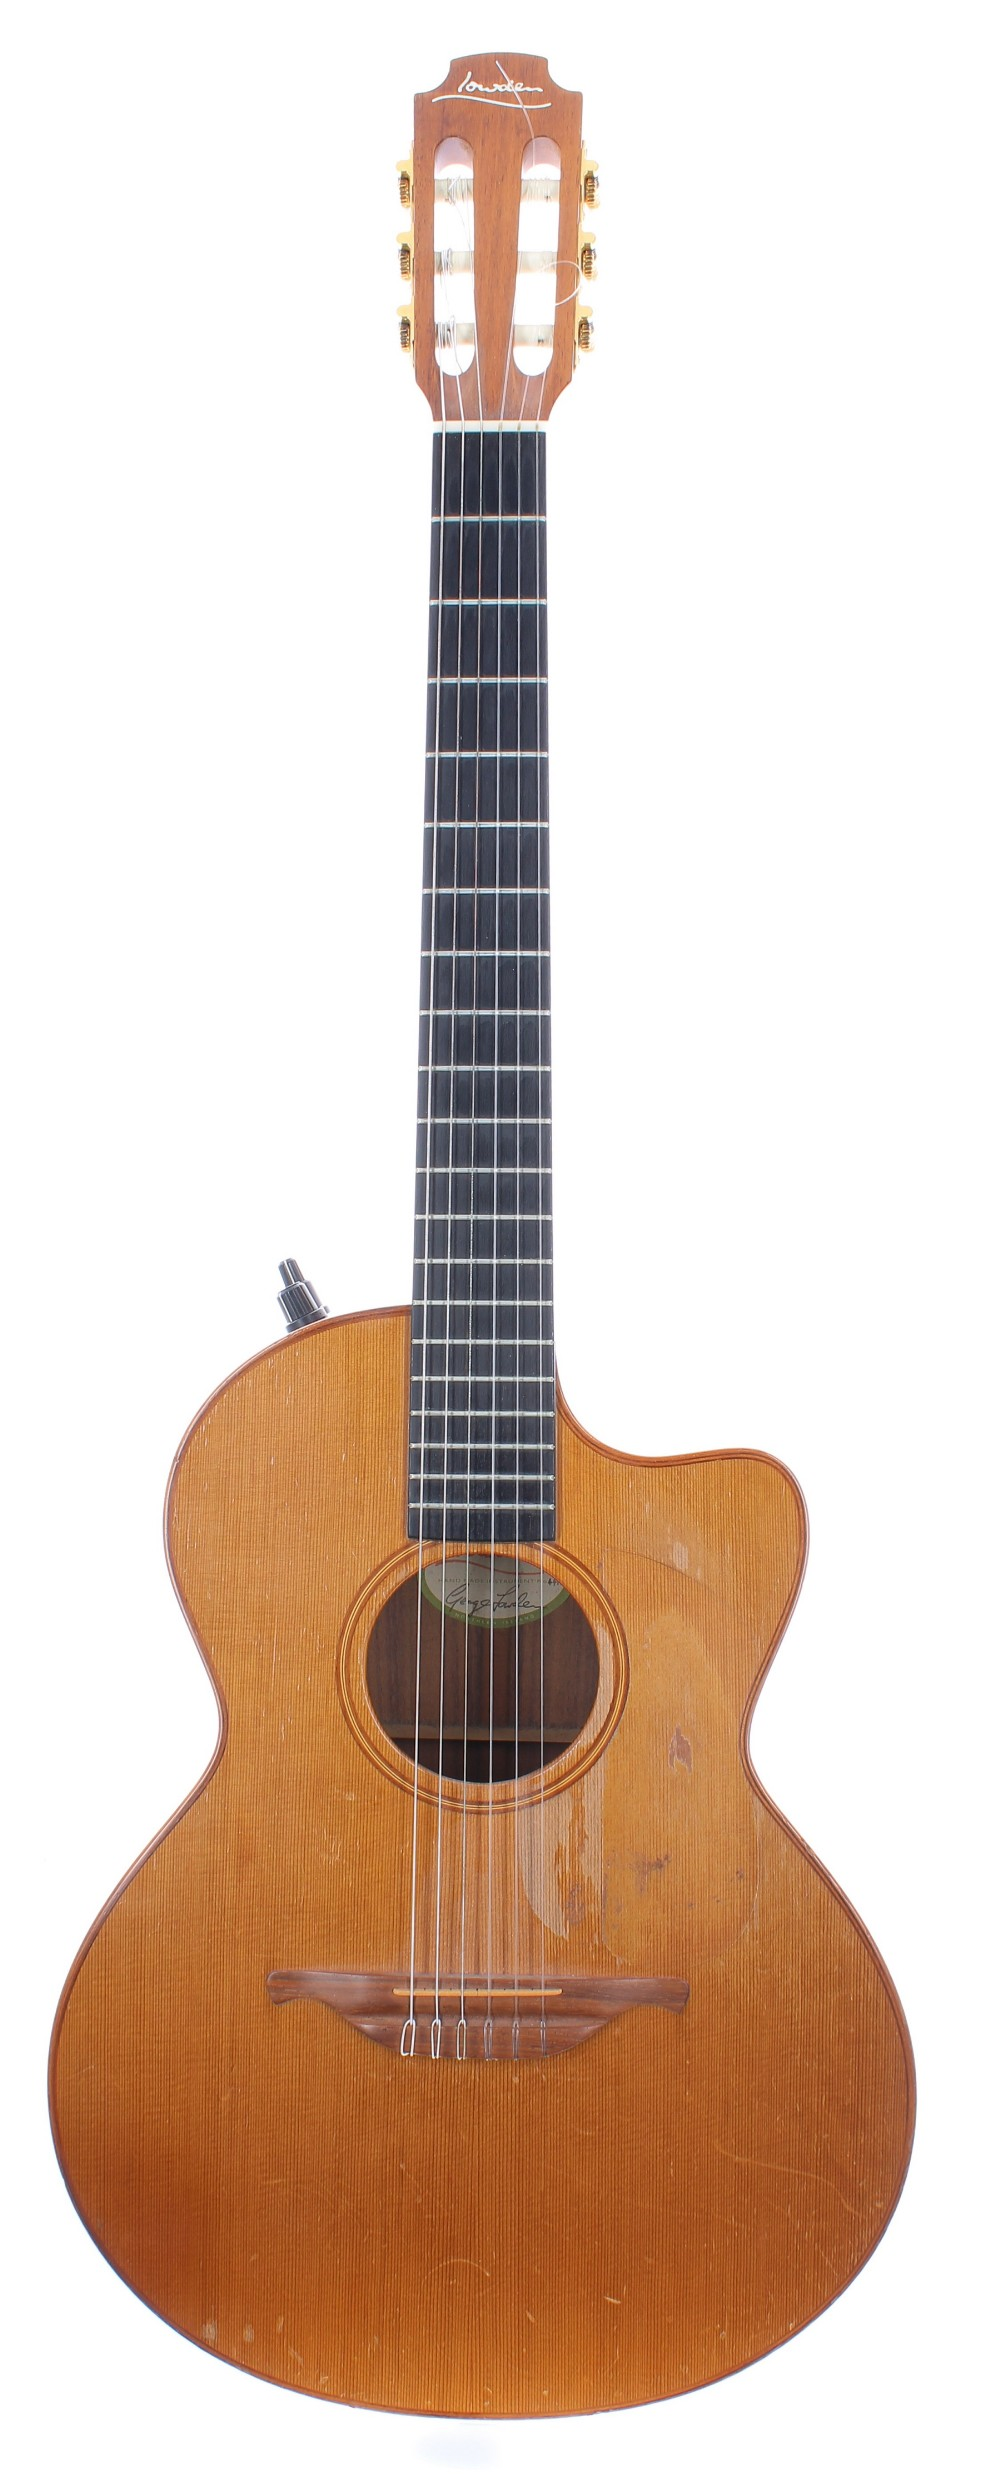 1991 George Lowden S25J nylon string electro-acoustic guitar, made in Northern Ireland, ser. no.